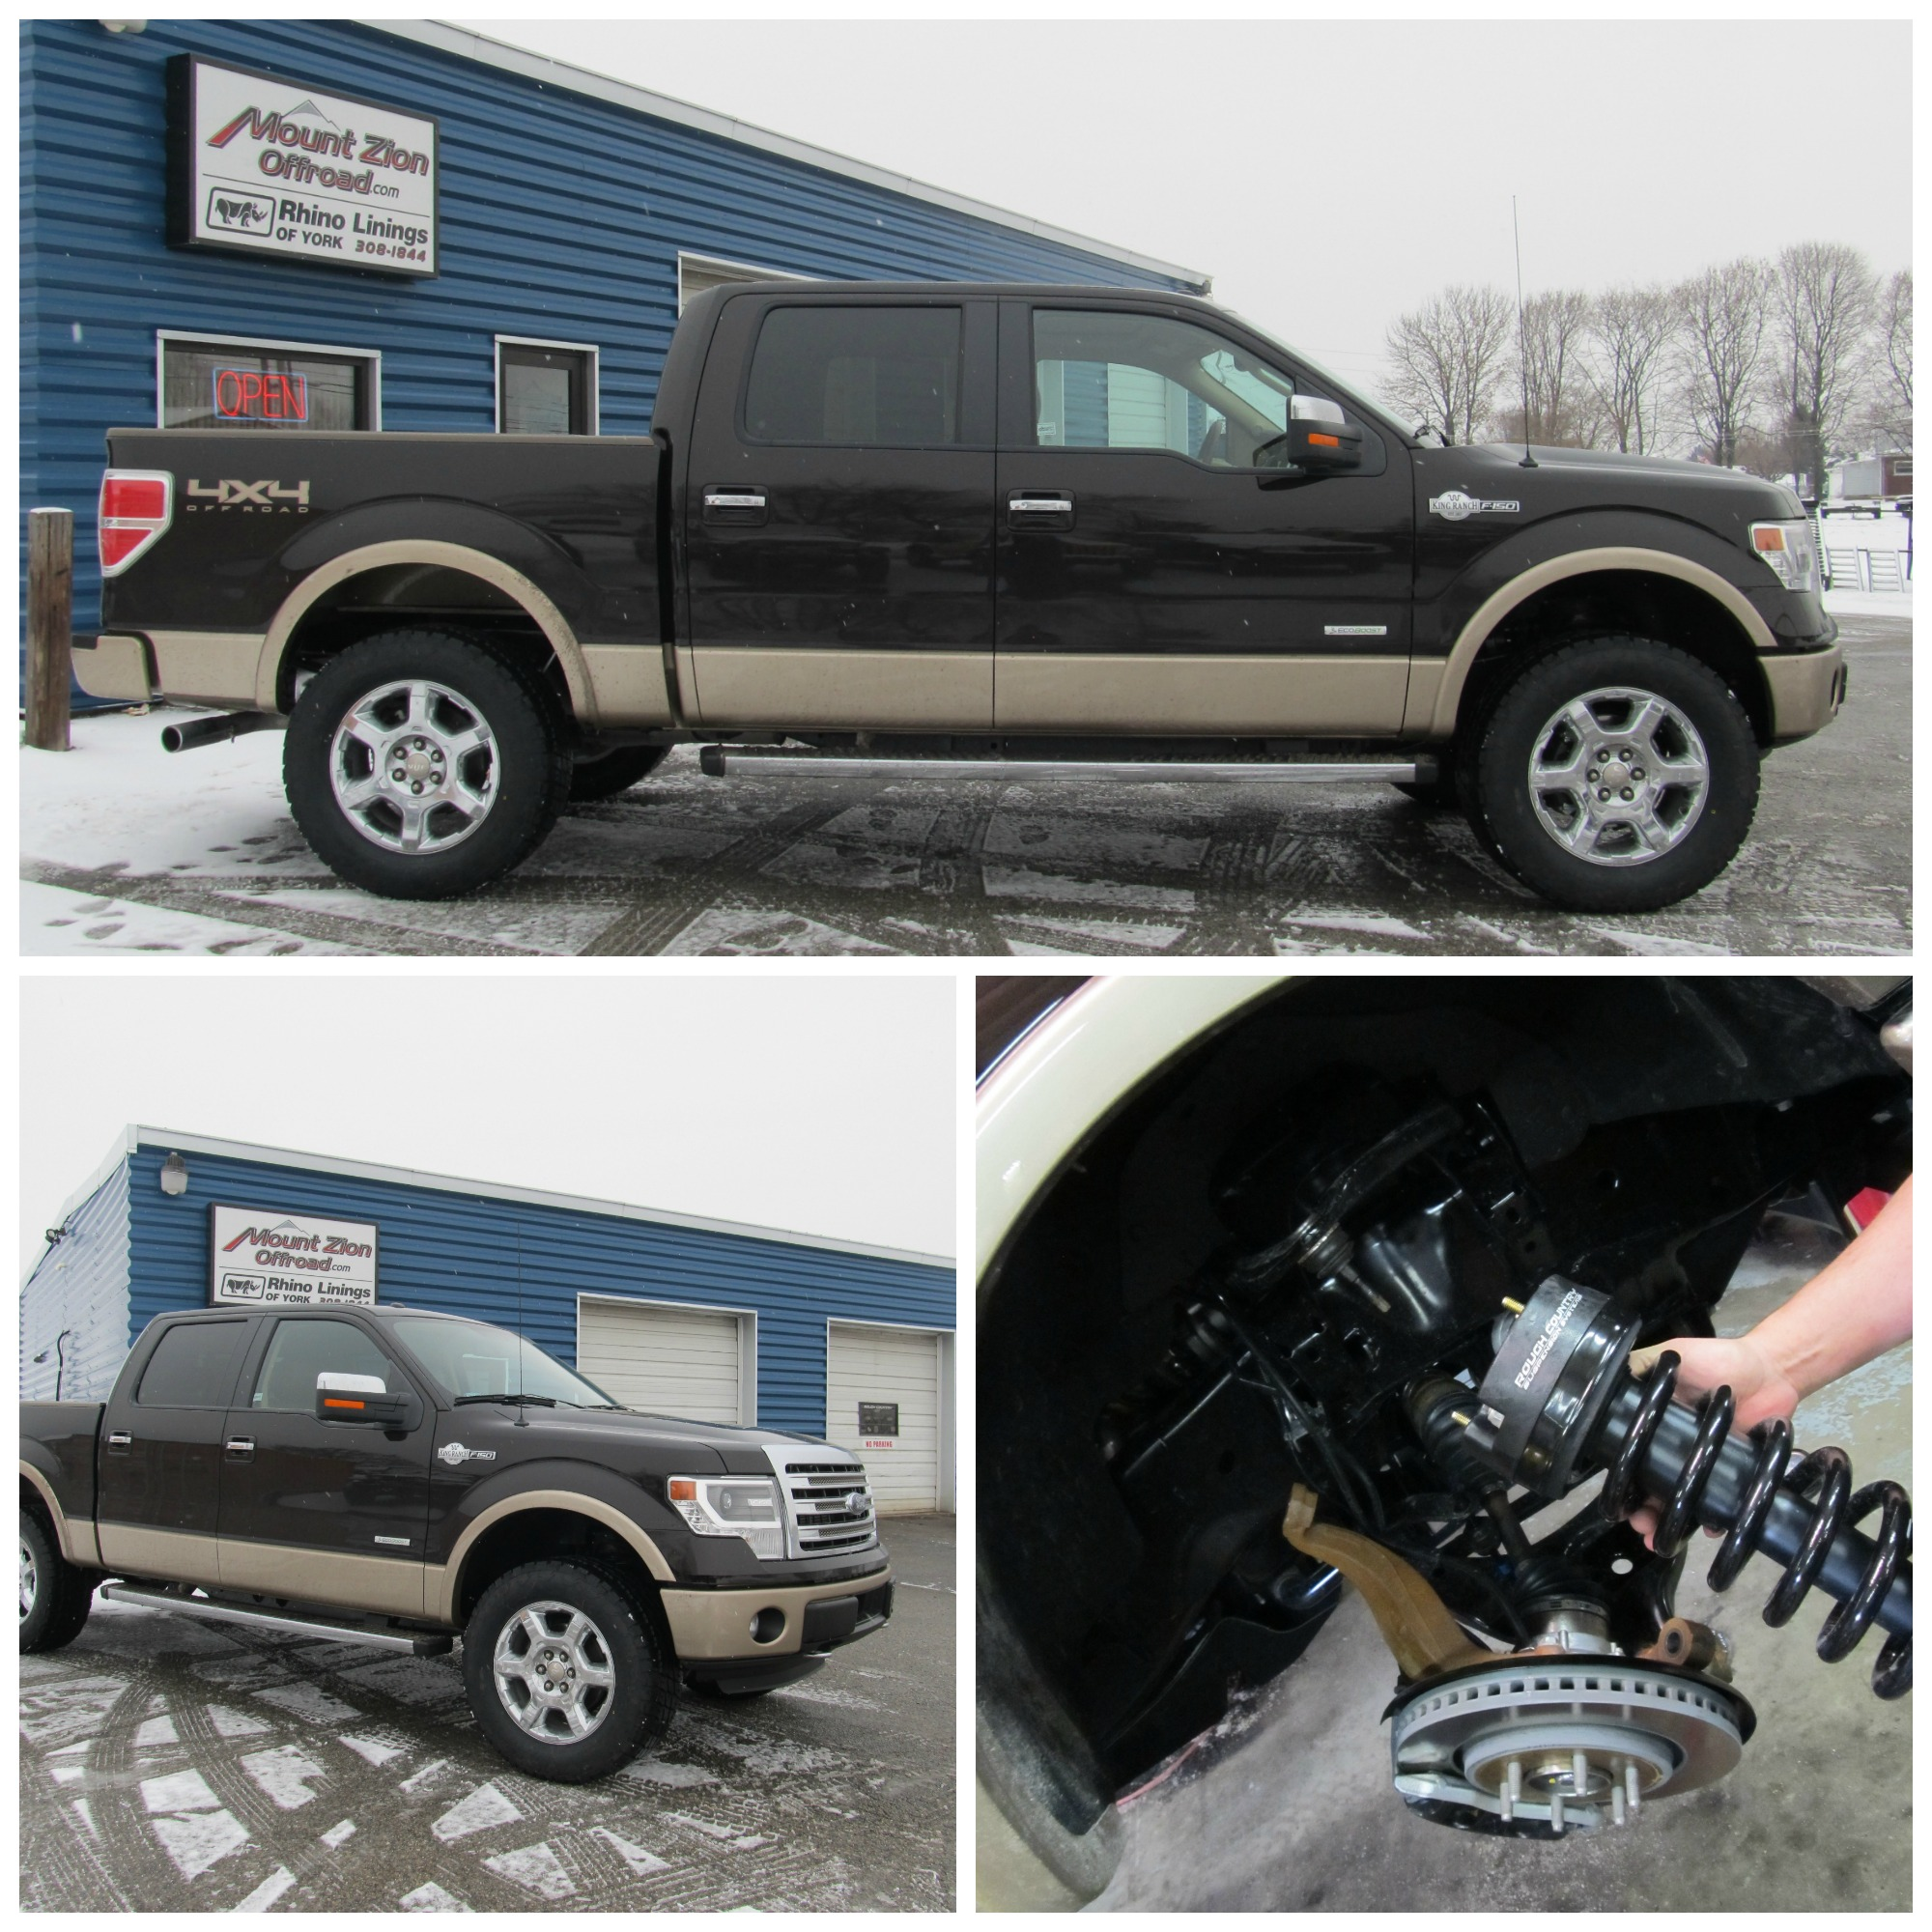 Leveling Kit For Ford F150: Ford F150 King Ranch Gets A Lift, Tires & Rhino Lining